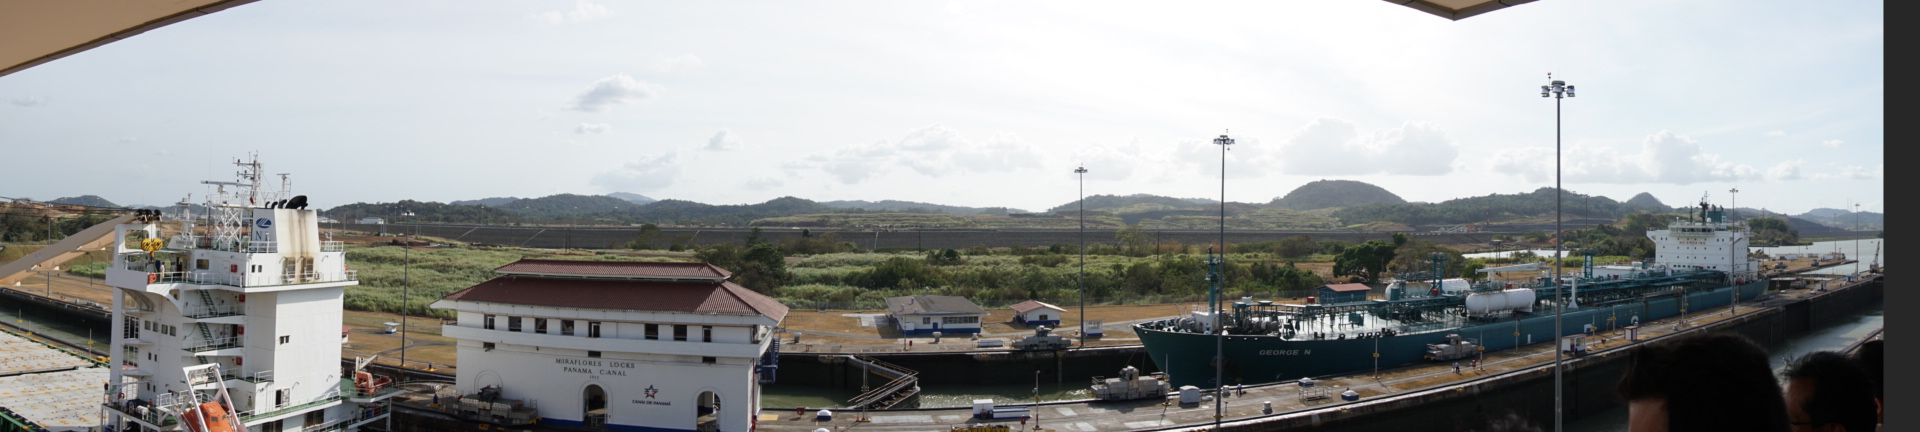 A panoramic view of the Miraflores Locks.